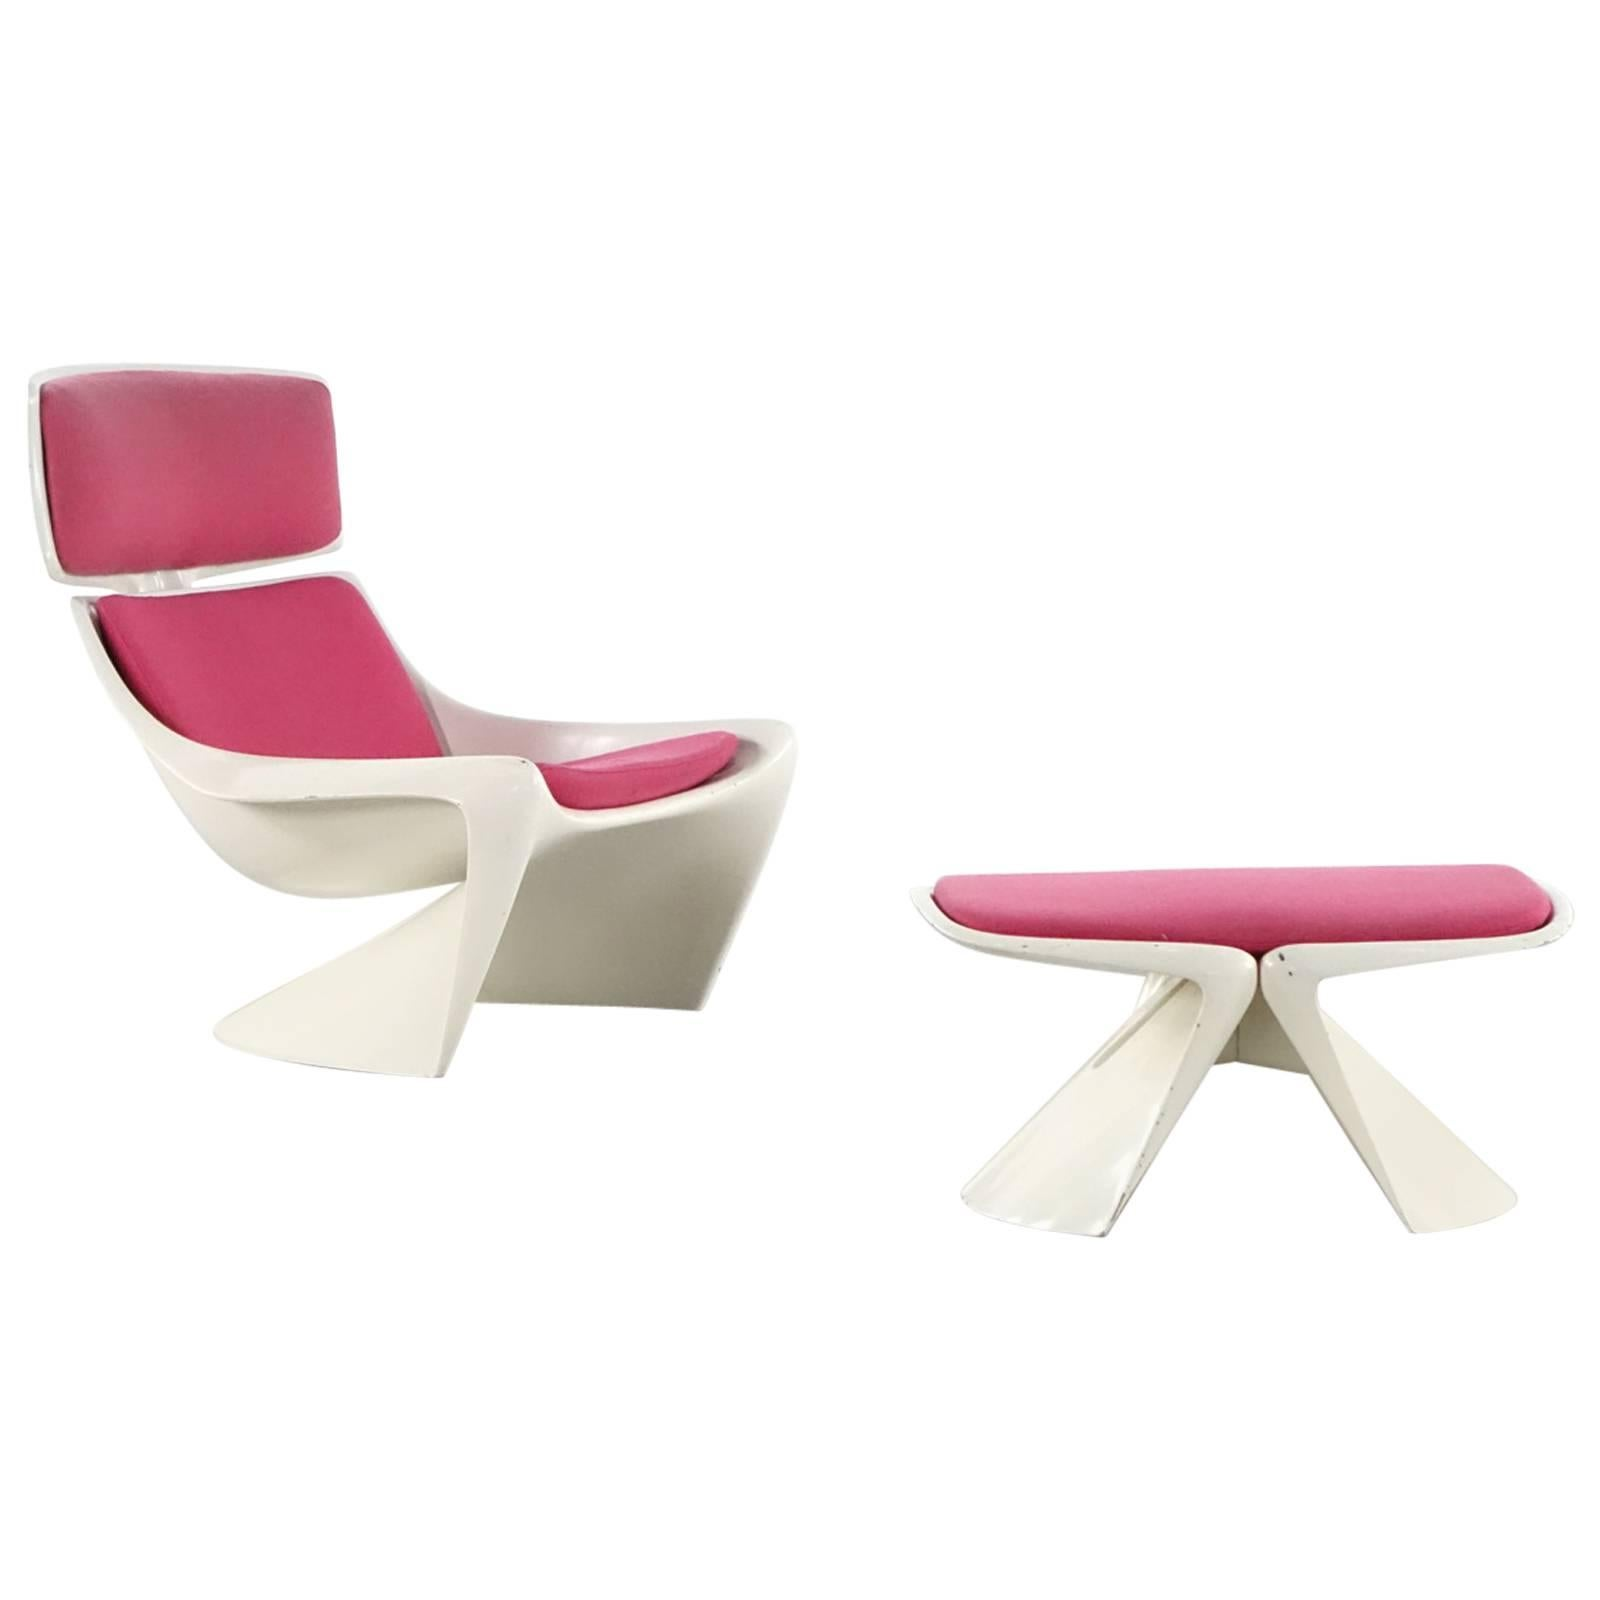 Steen Ostergaard Lounge Chair, Meteor for Cado